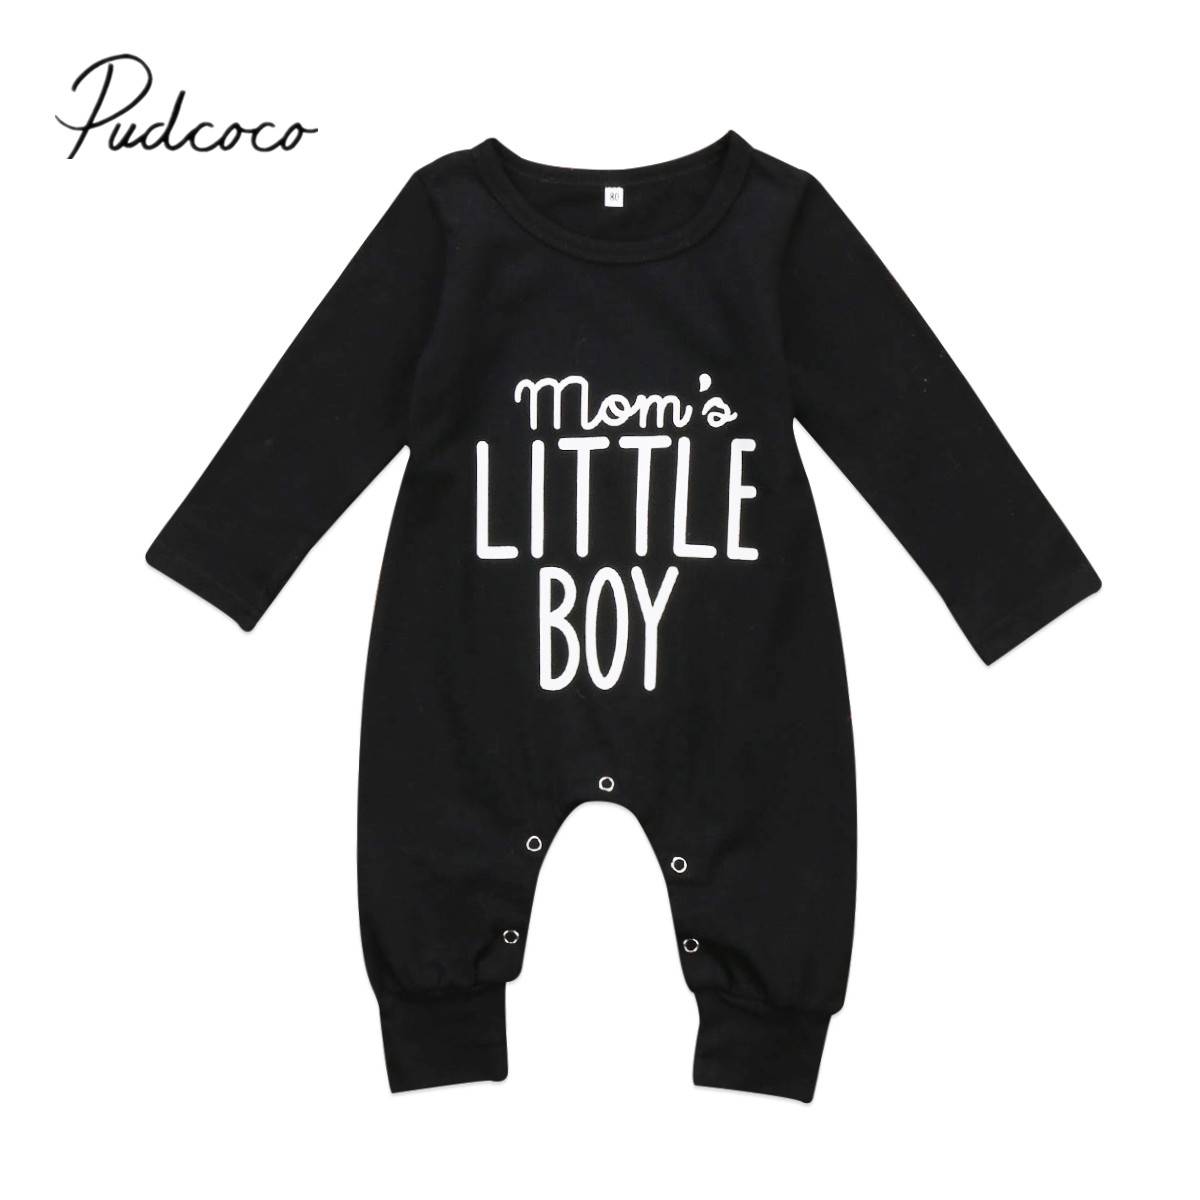 Pudcoco 2019 New Fashion Newborn Toddler Infant Baby Boys Romper Long Sleeve Jumpsuit Playsuit Little Boy Outfits Black Clothes